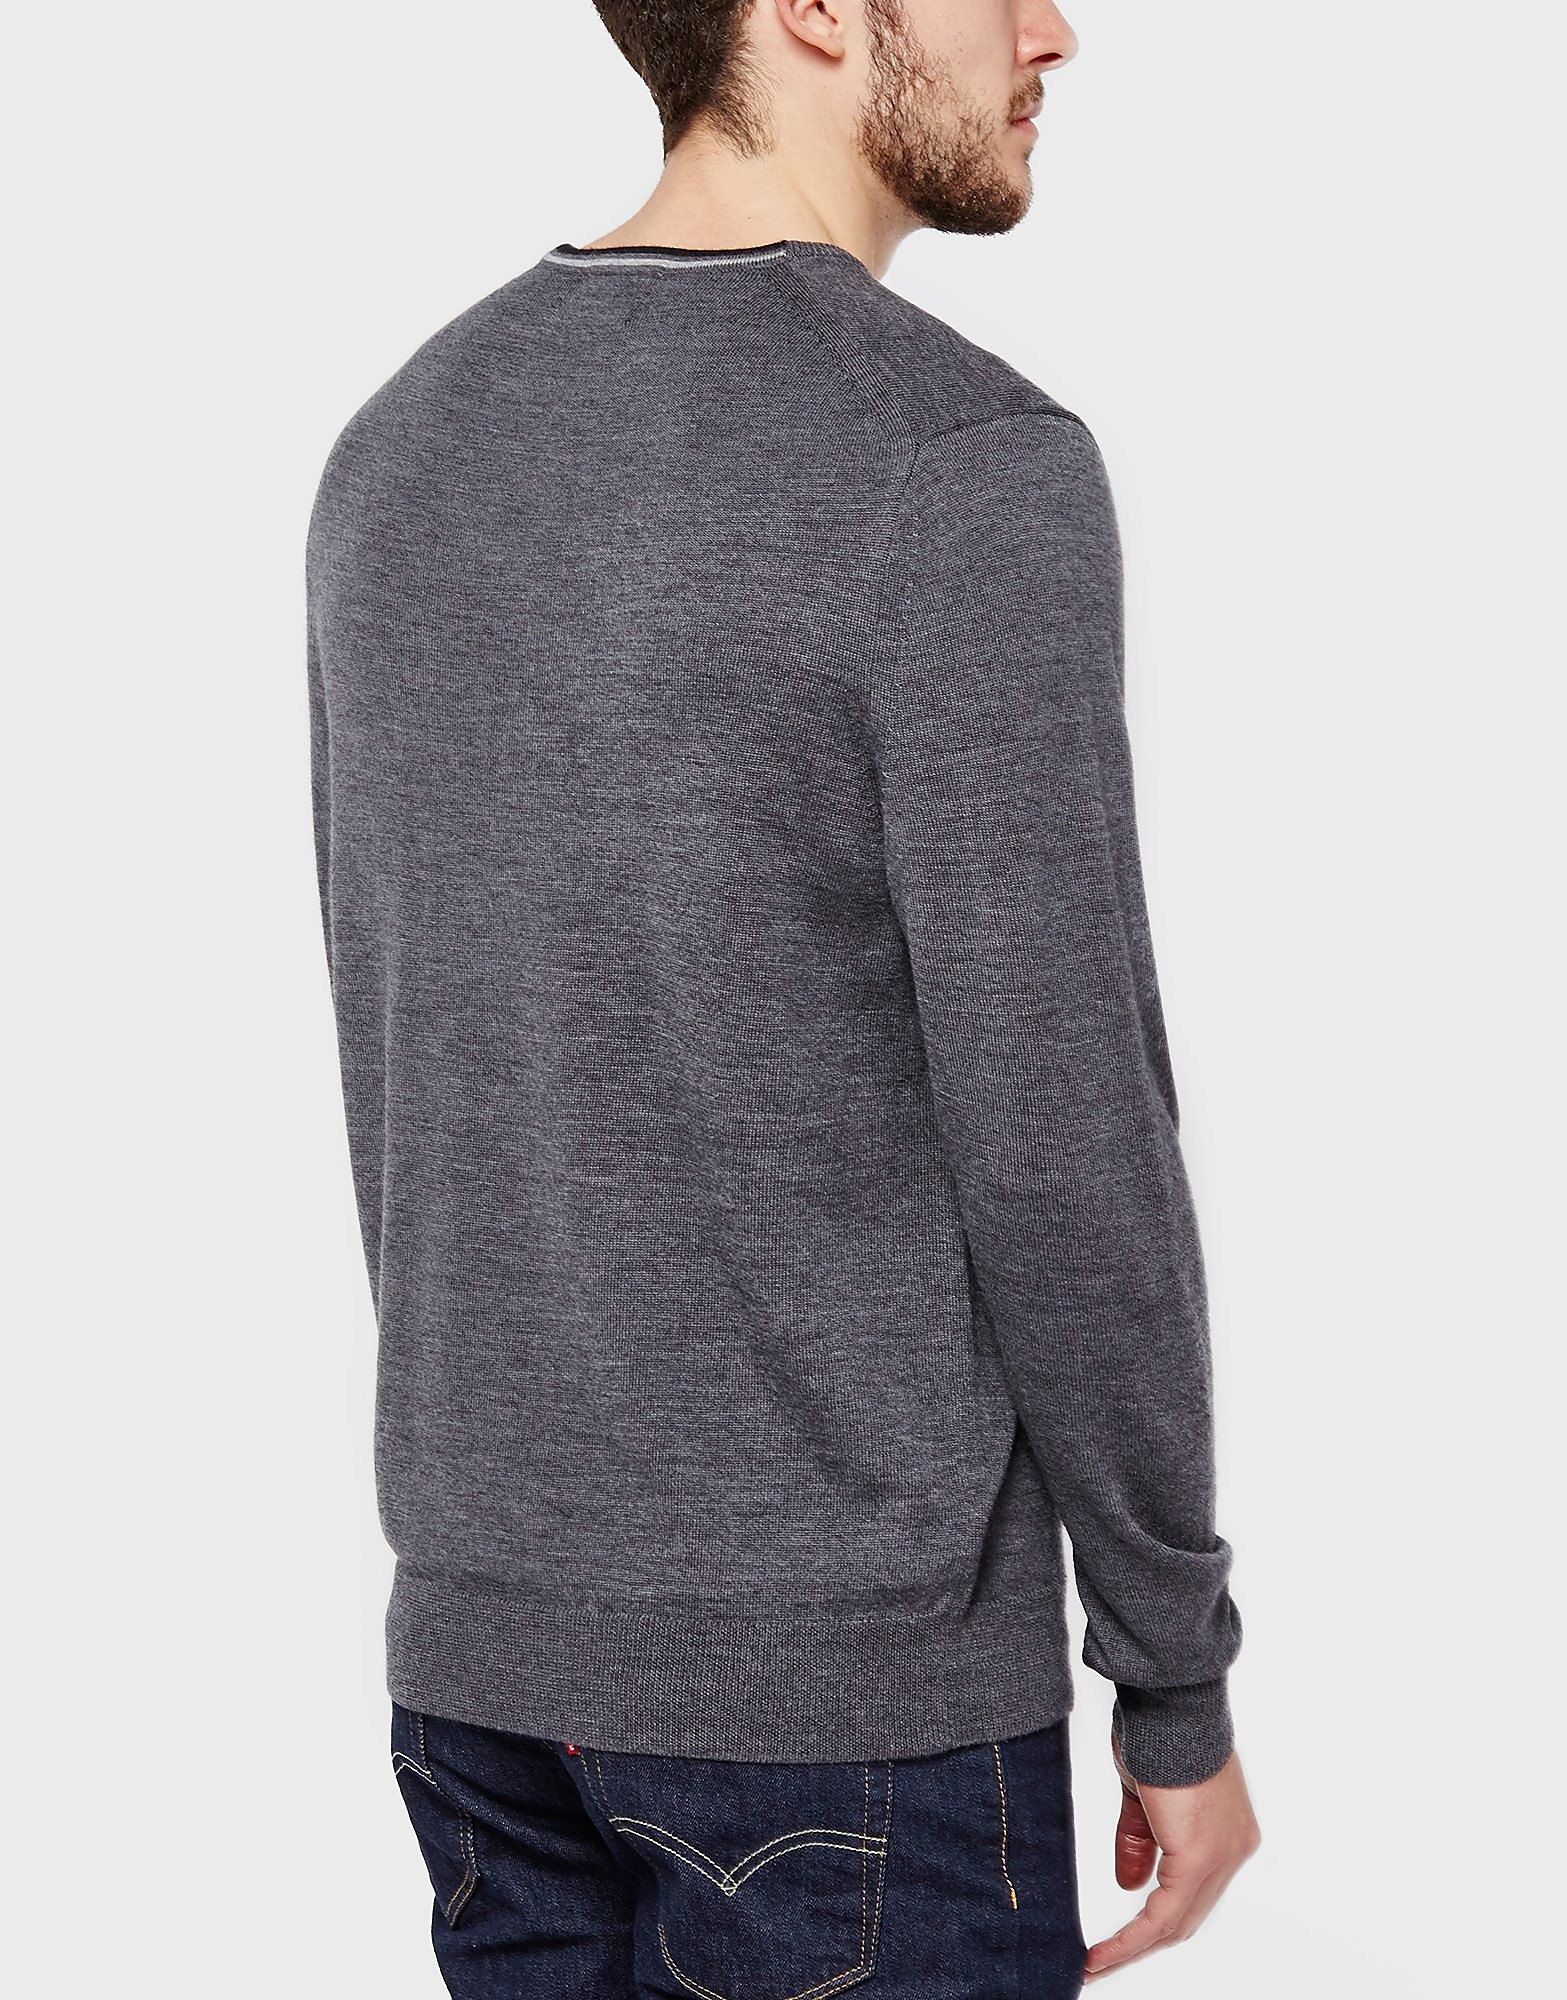 Fred Perry Merino Crew Knit